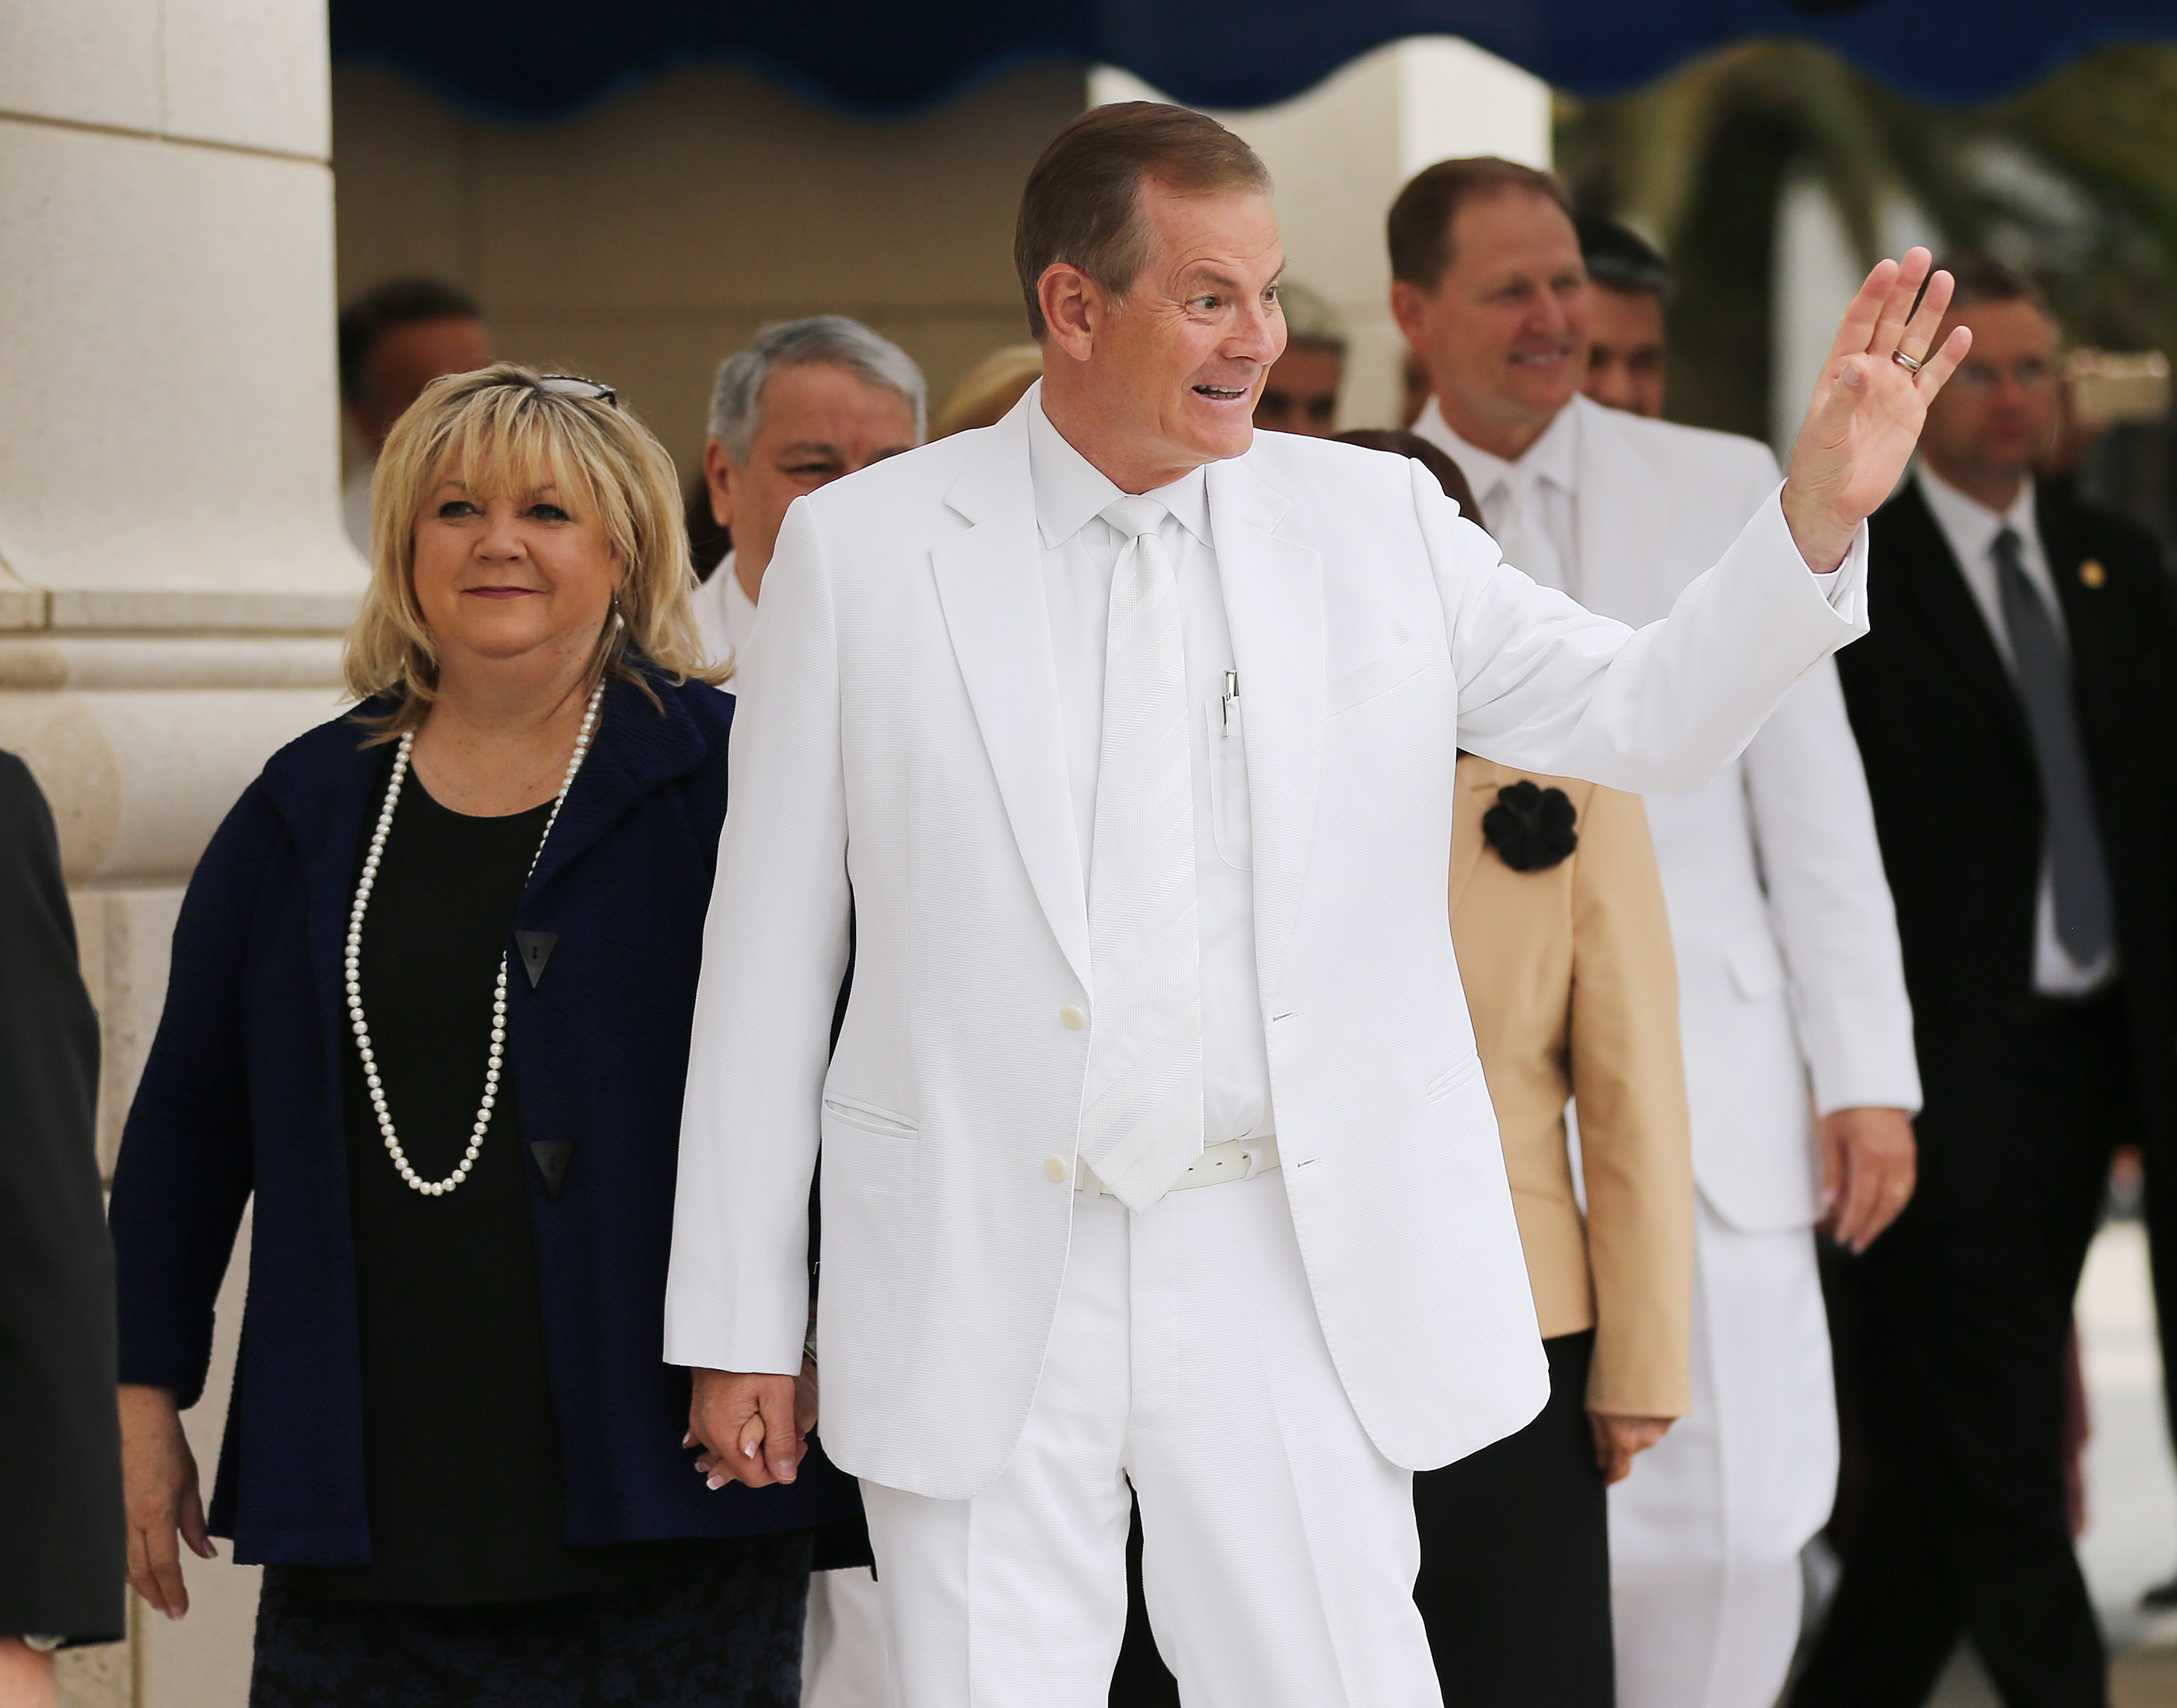 Elder Gary E. Stevenson of the Quorum of the Twelve Apostles and his wife, Sister Lesa Stevenson, wave during the dedication of the Concepcion Chile Temple in Concepcion, Chile, on Sunday, Oct. 28, 2018.